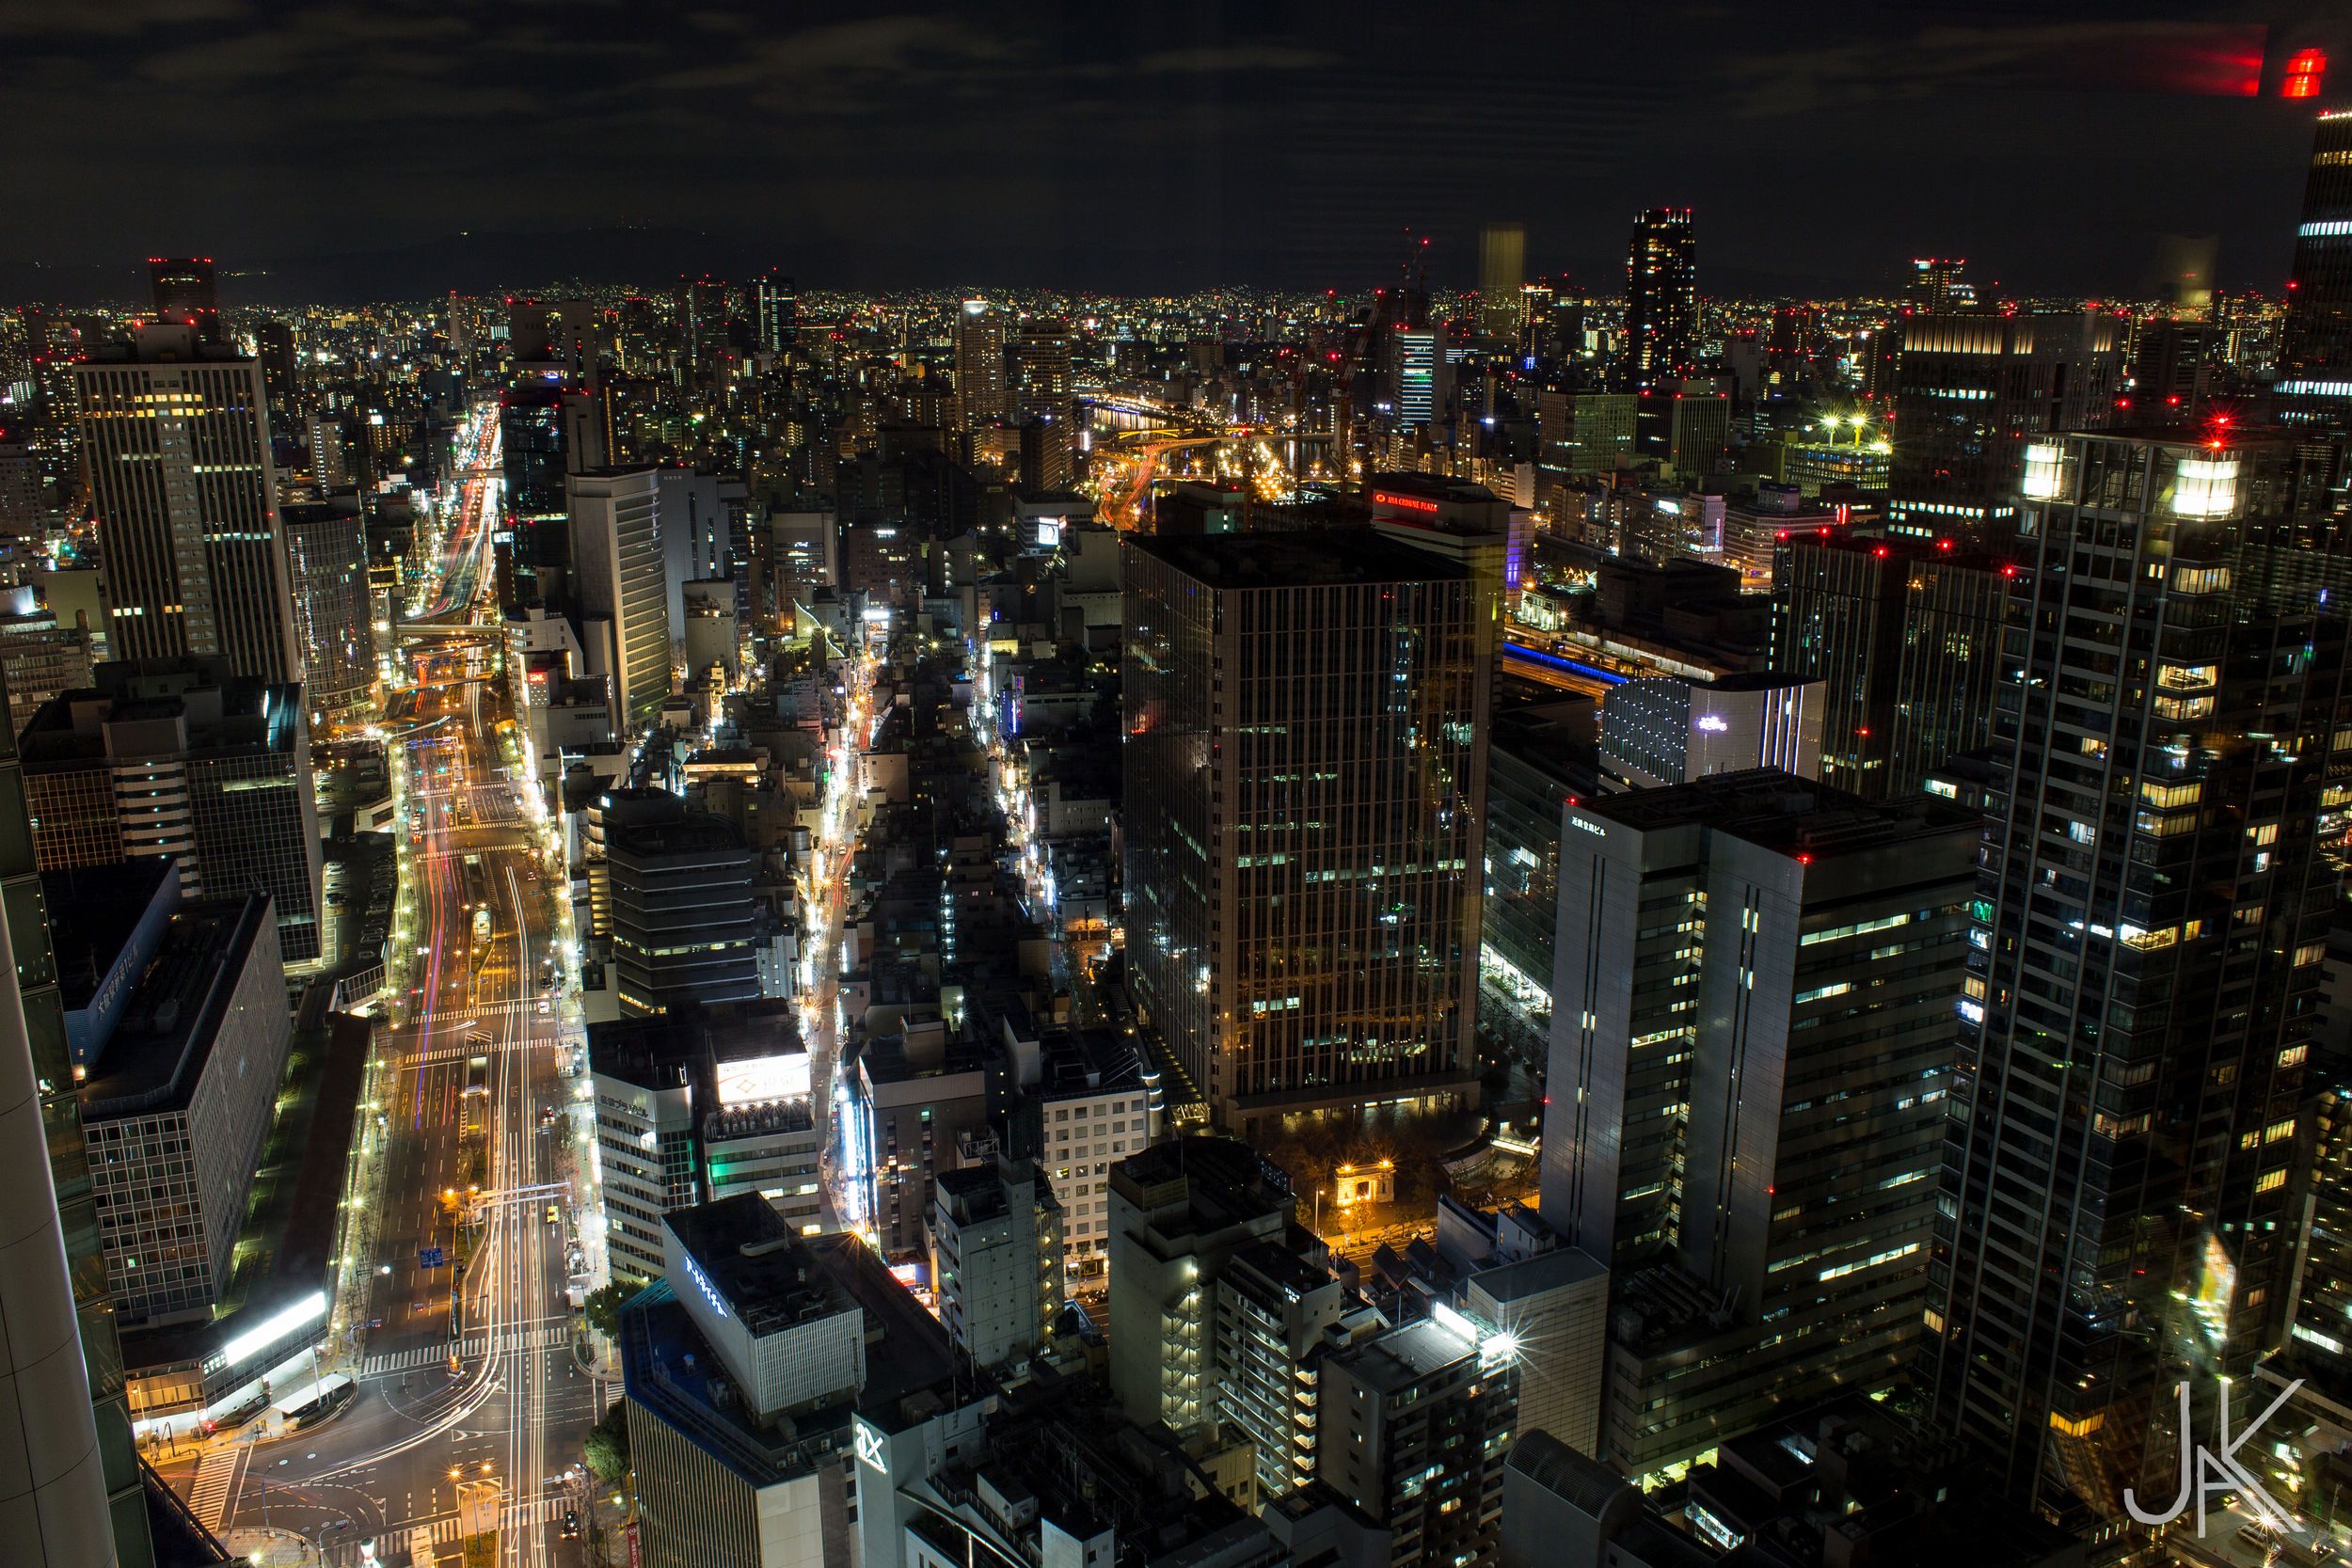 Osaka at Night 2